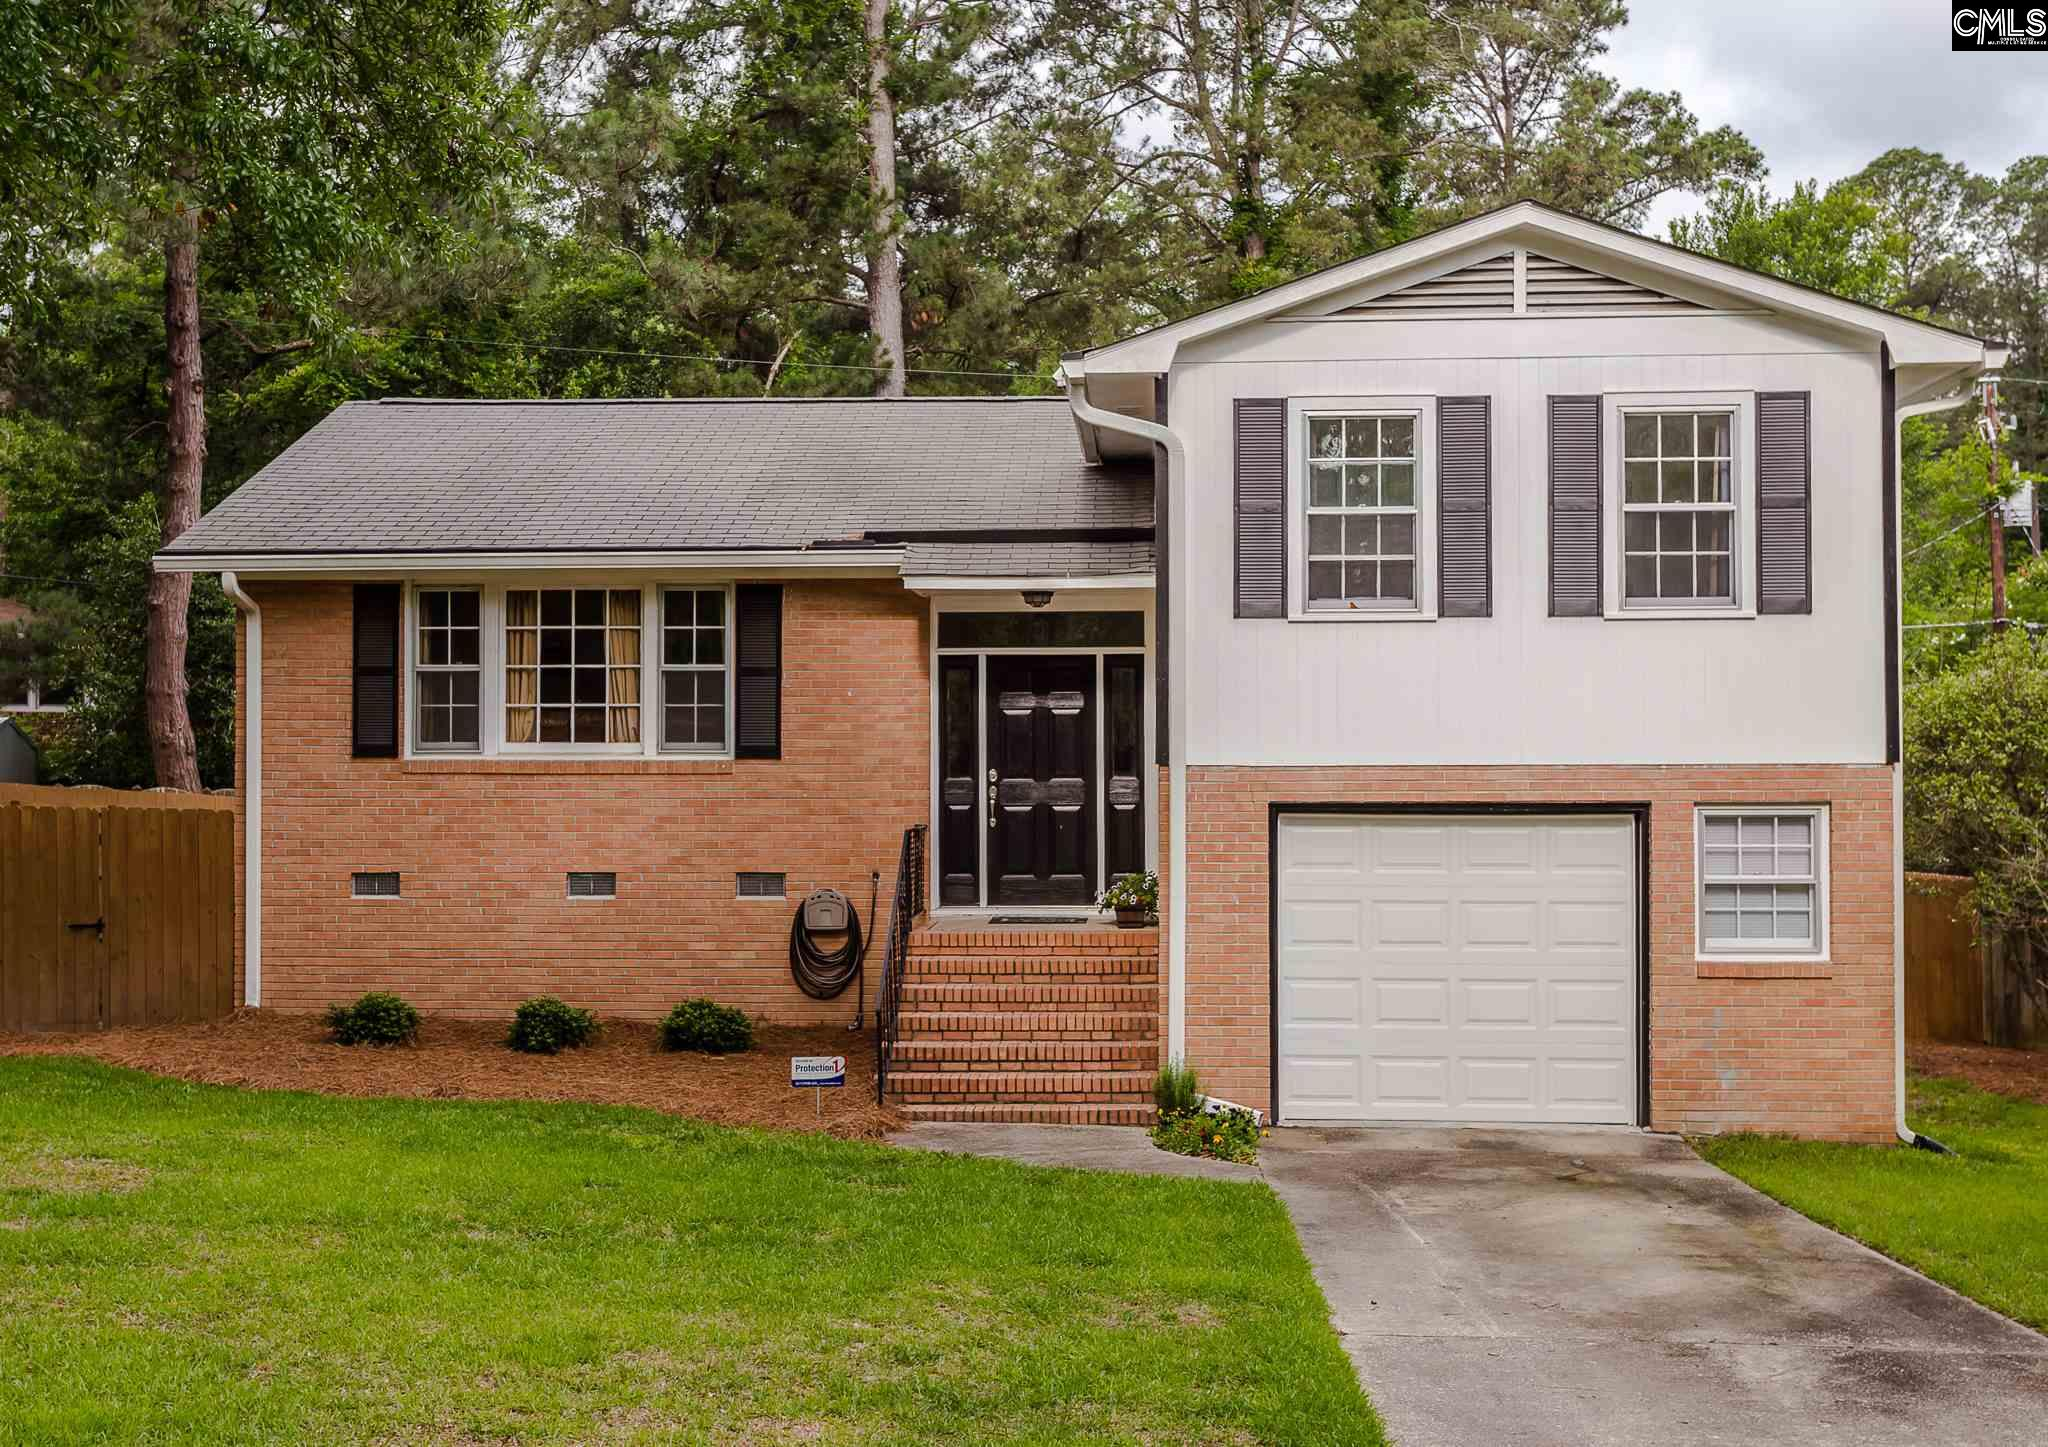 1521 Lonsford Columbia, SC 29206